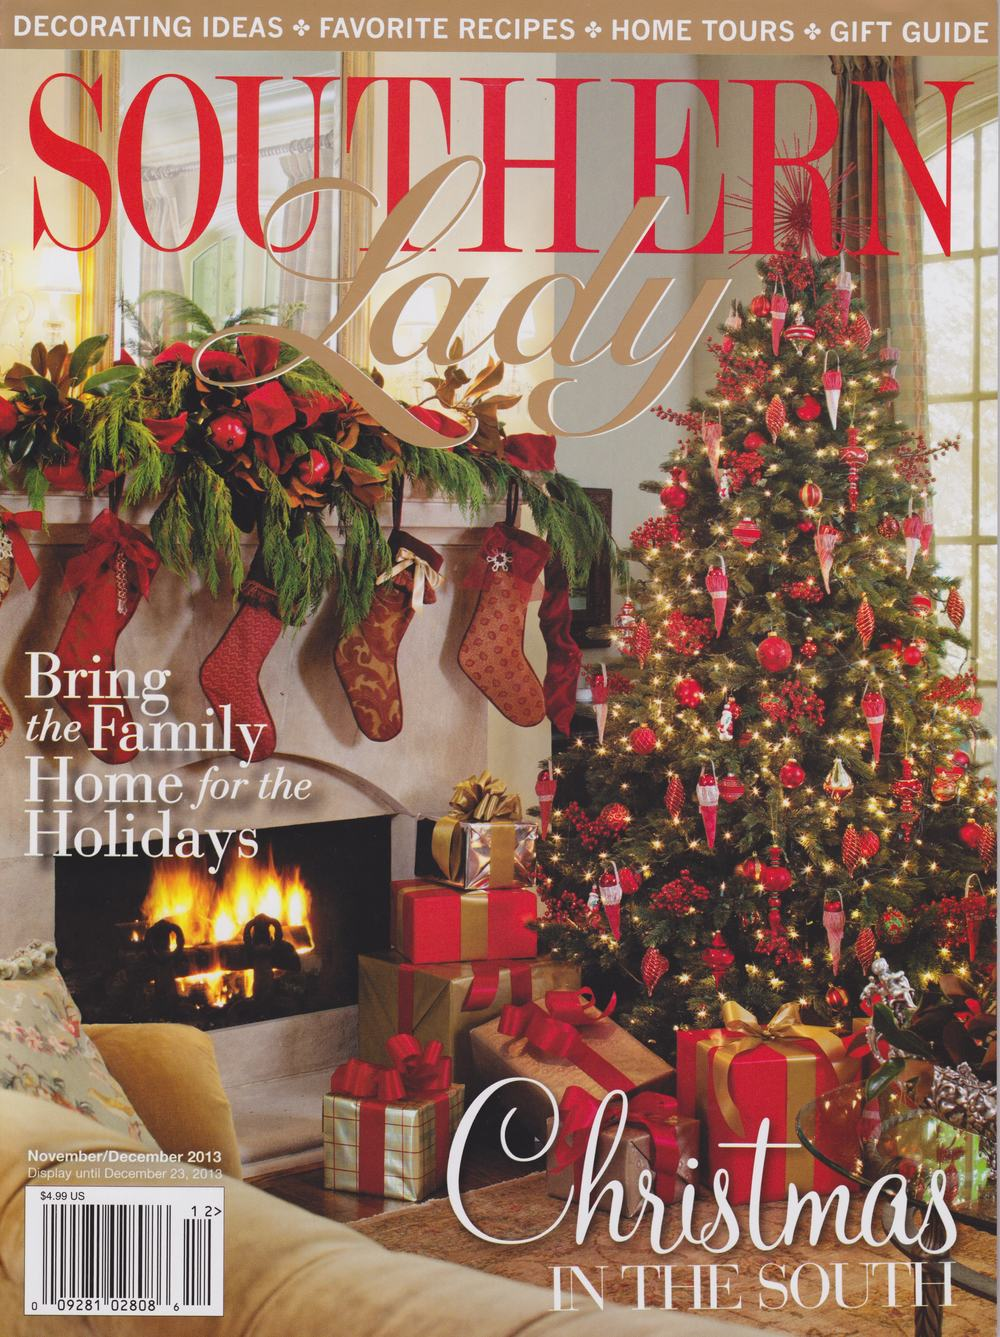 Southern Lady Cover 11.13 copy.jpg